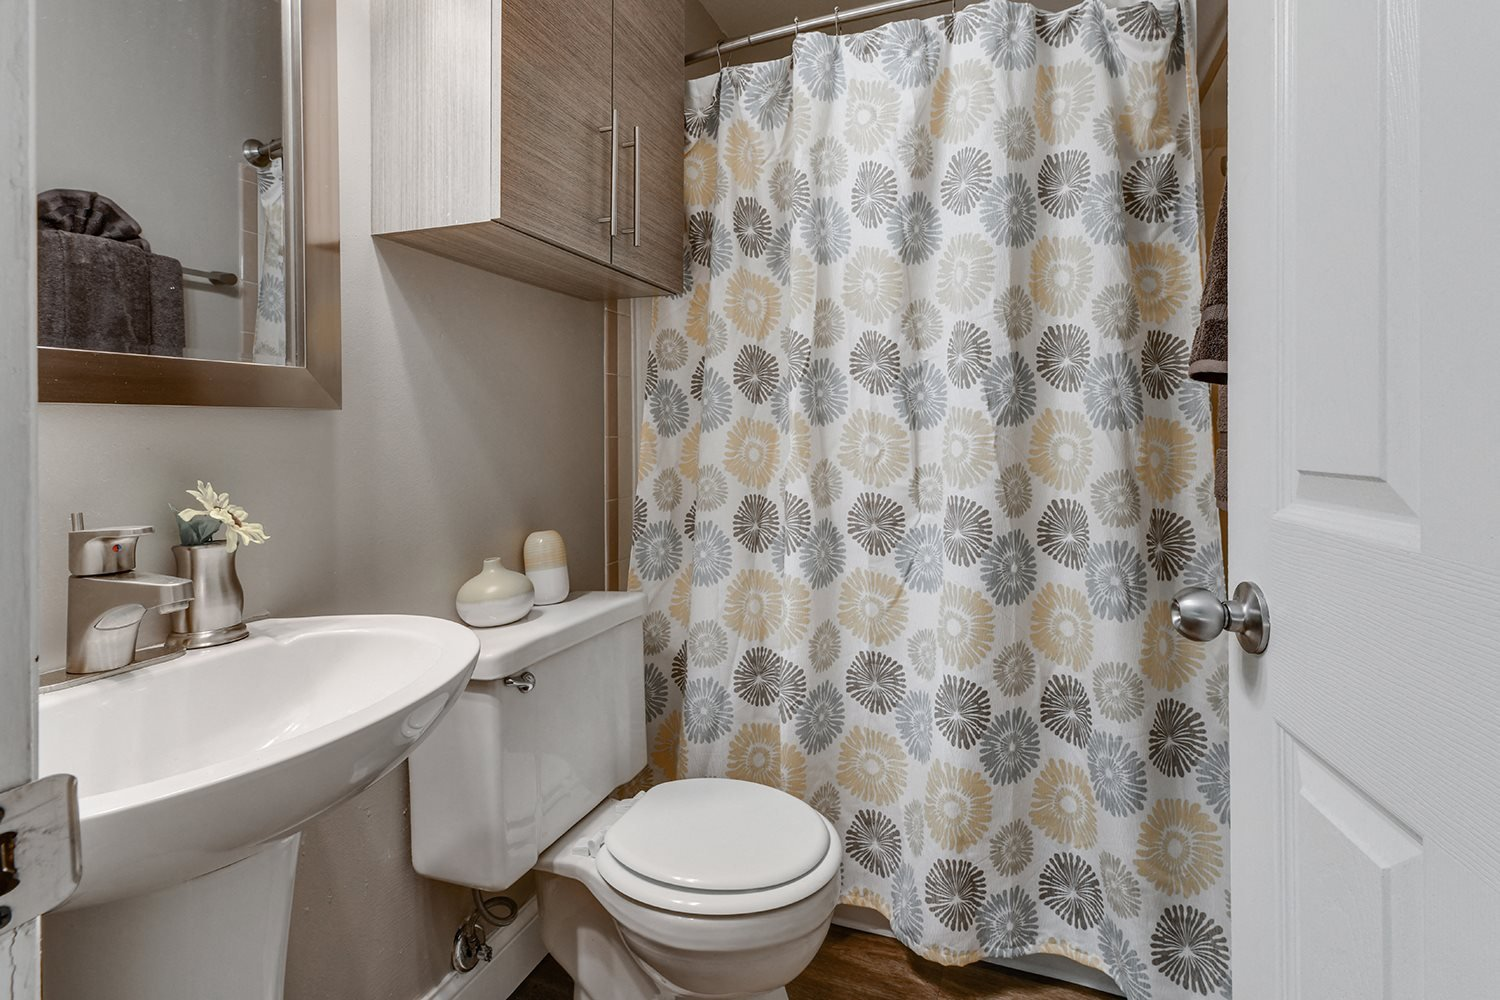 Updated Bathrooms at Heritage Hill Estates Apartments, Cincinnati, Ohio